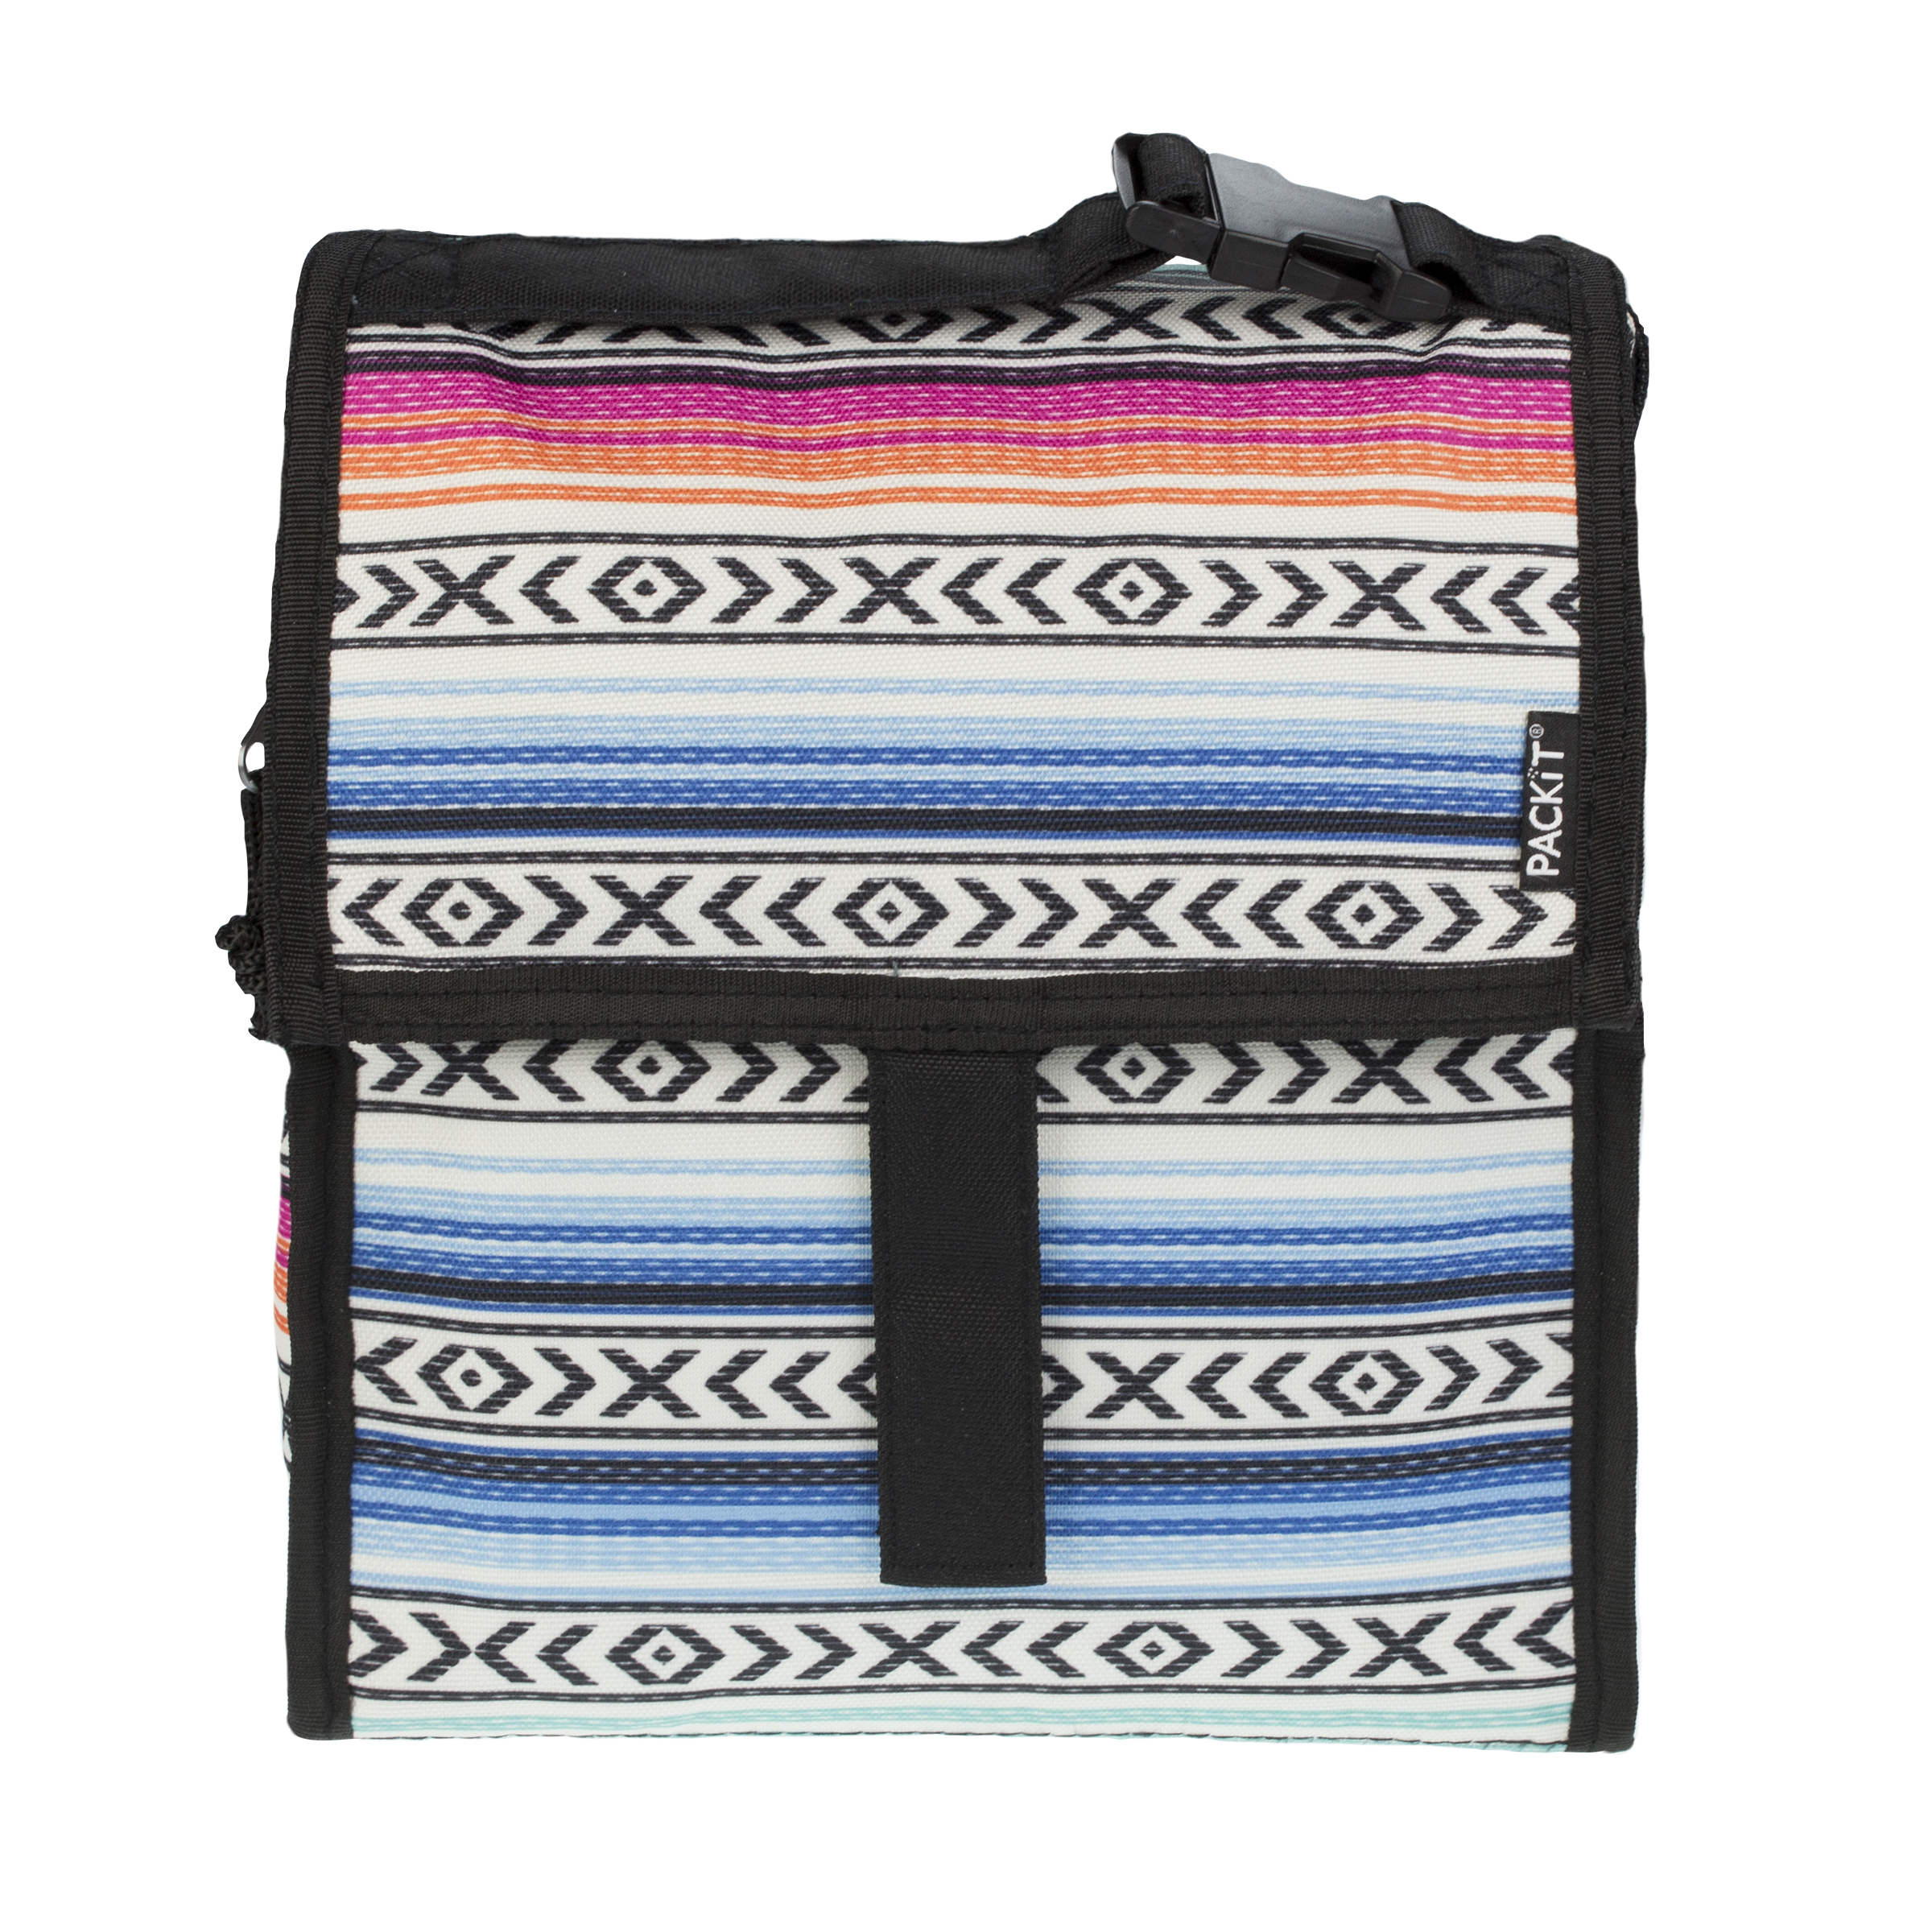 LUNCH BAG - FIESTA - PACKIT